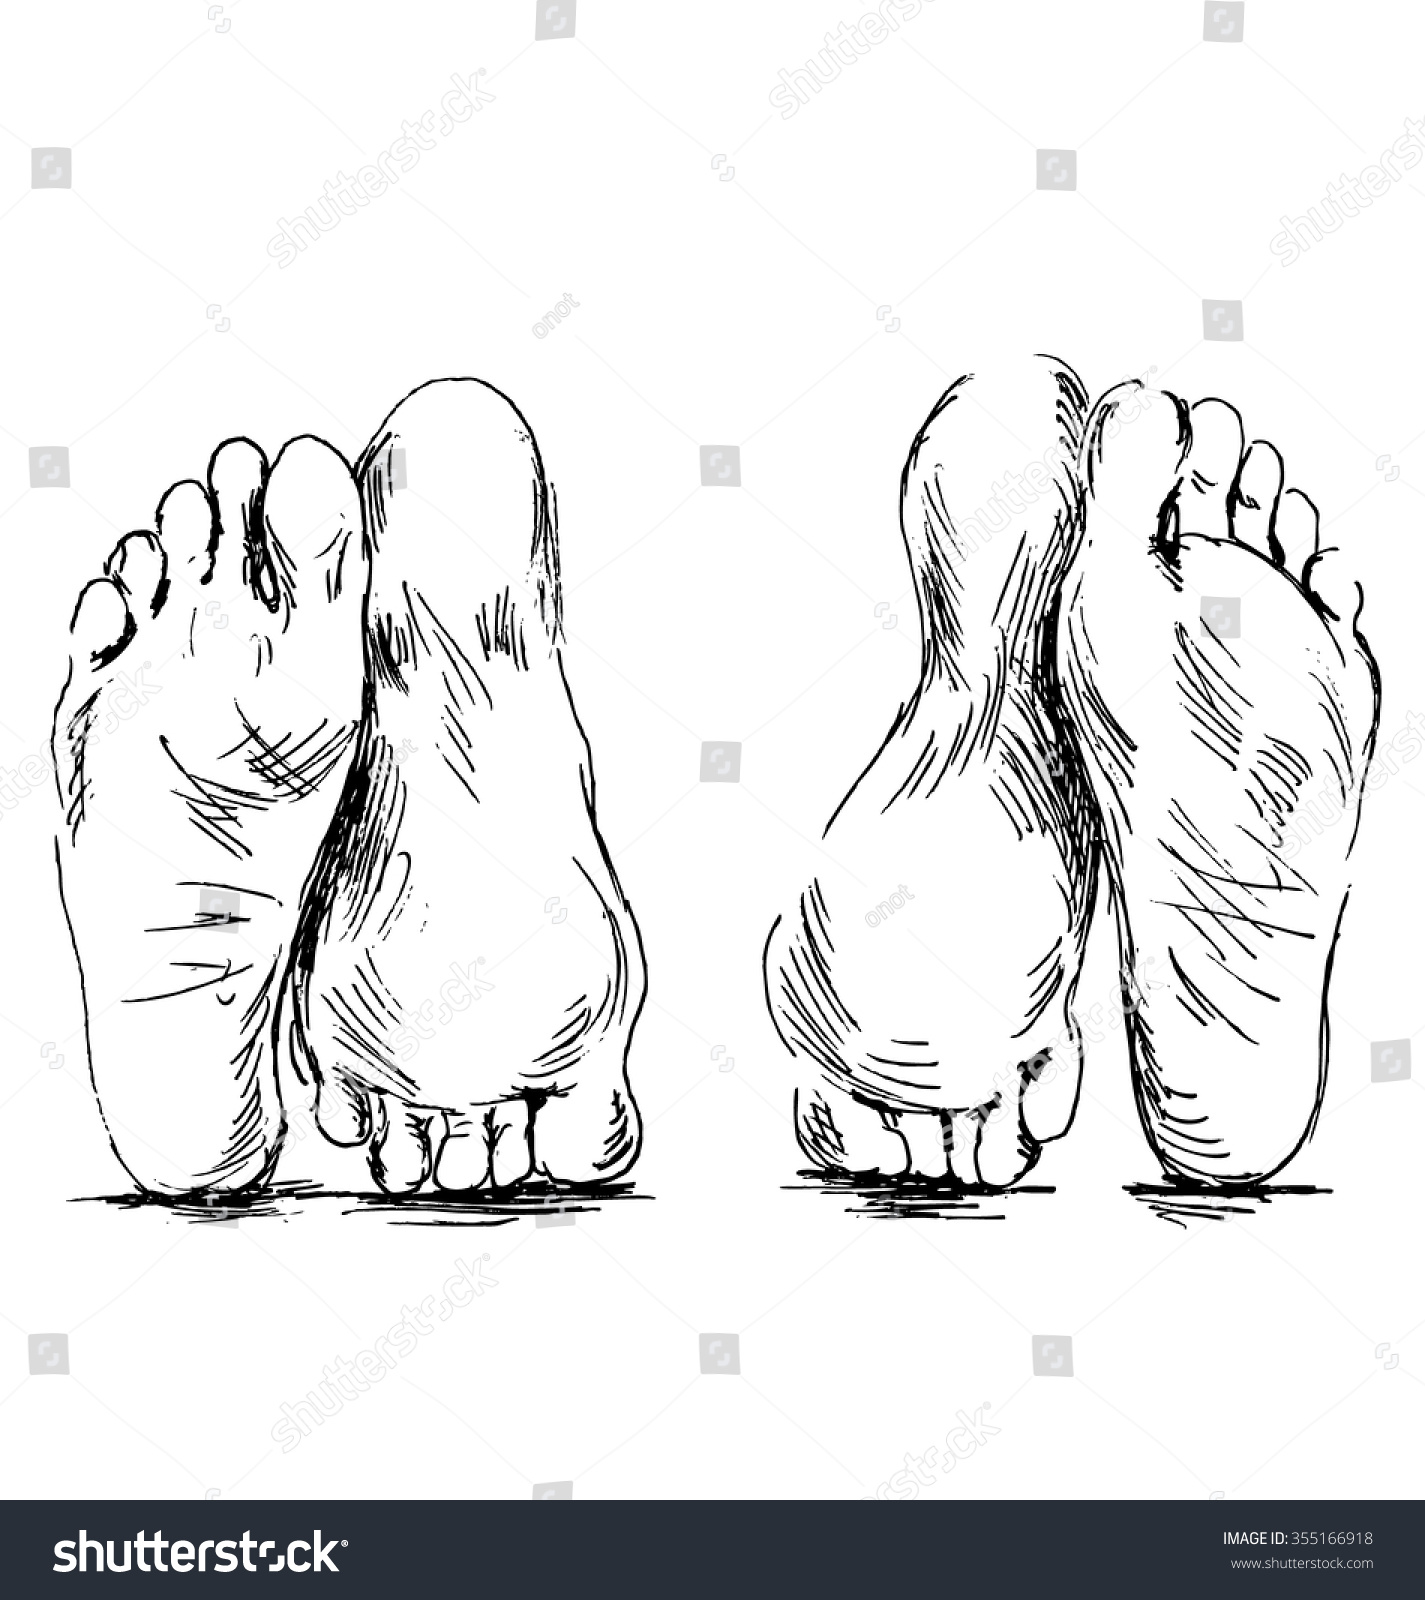 Hand sketch couple of feet having sex 355166918